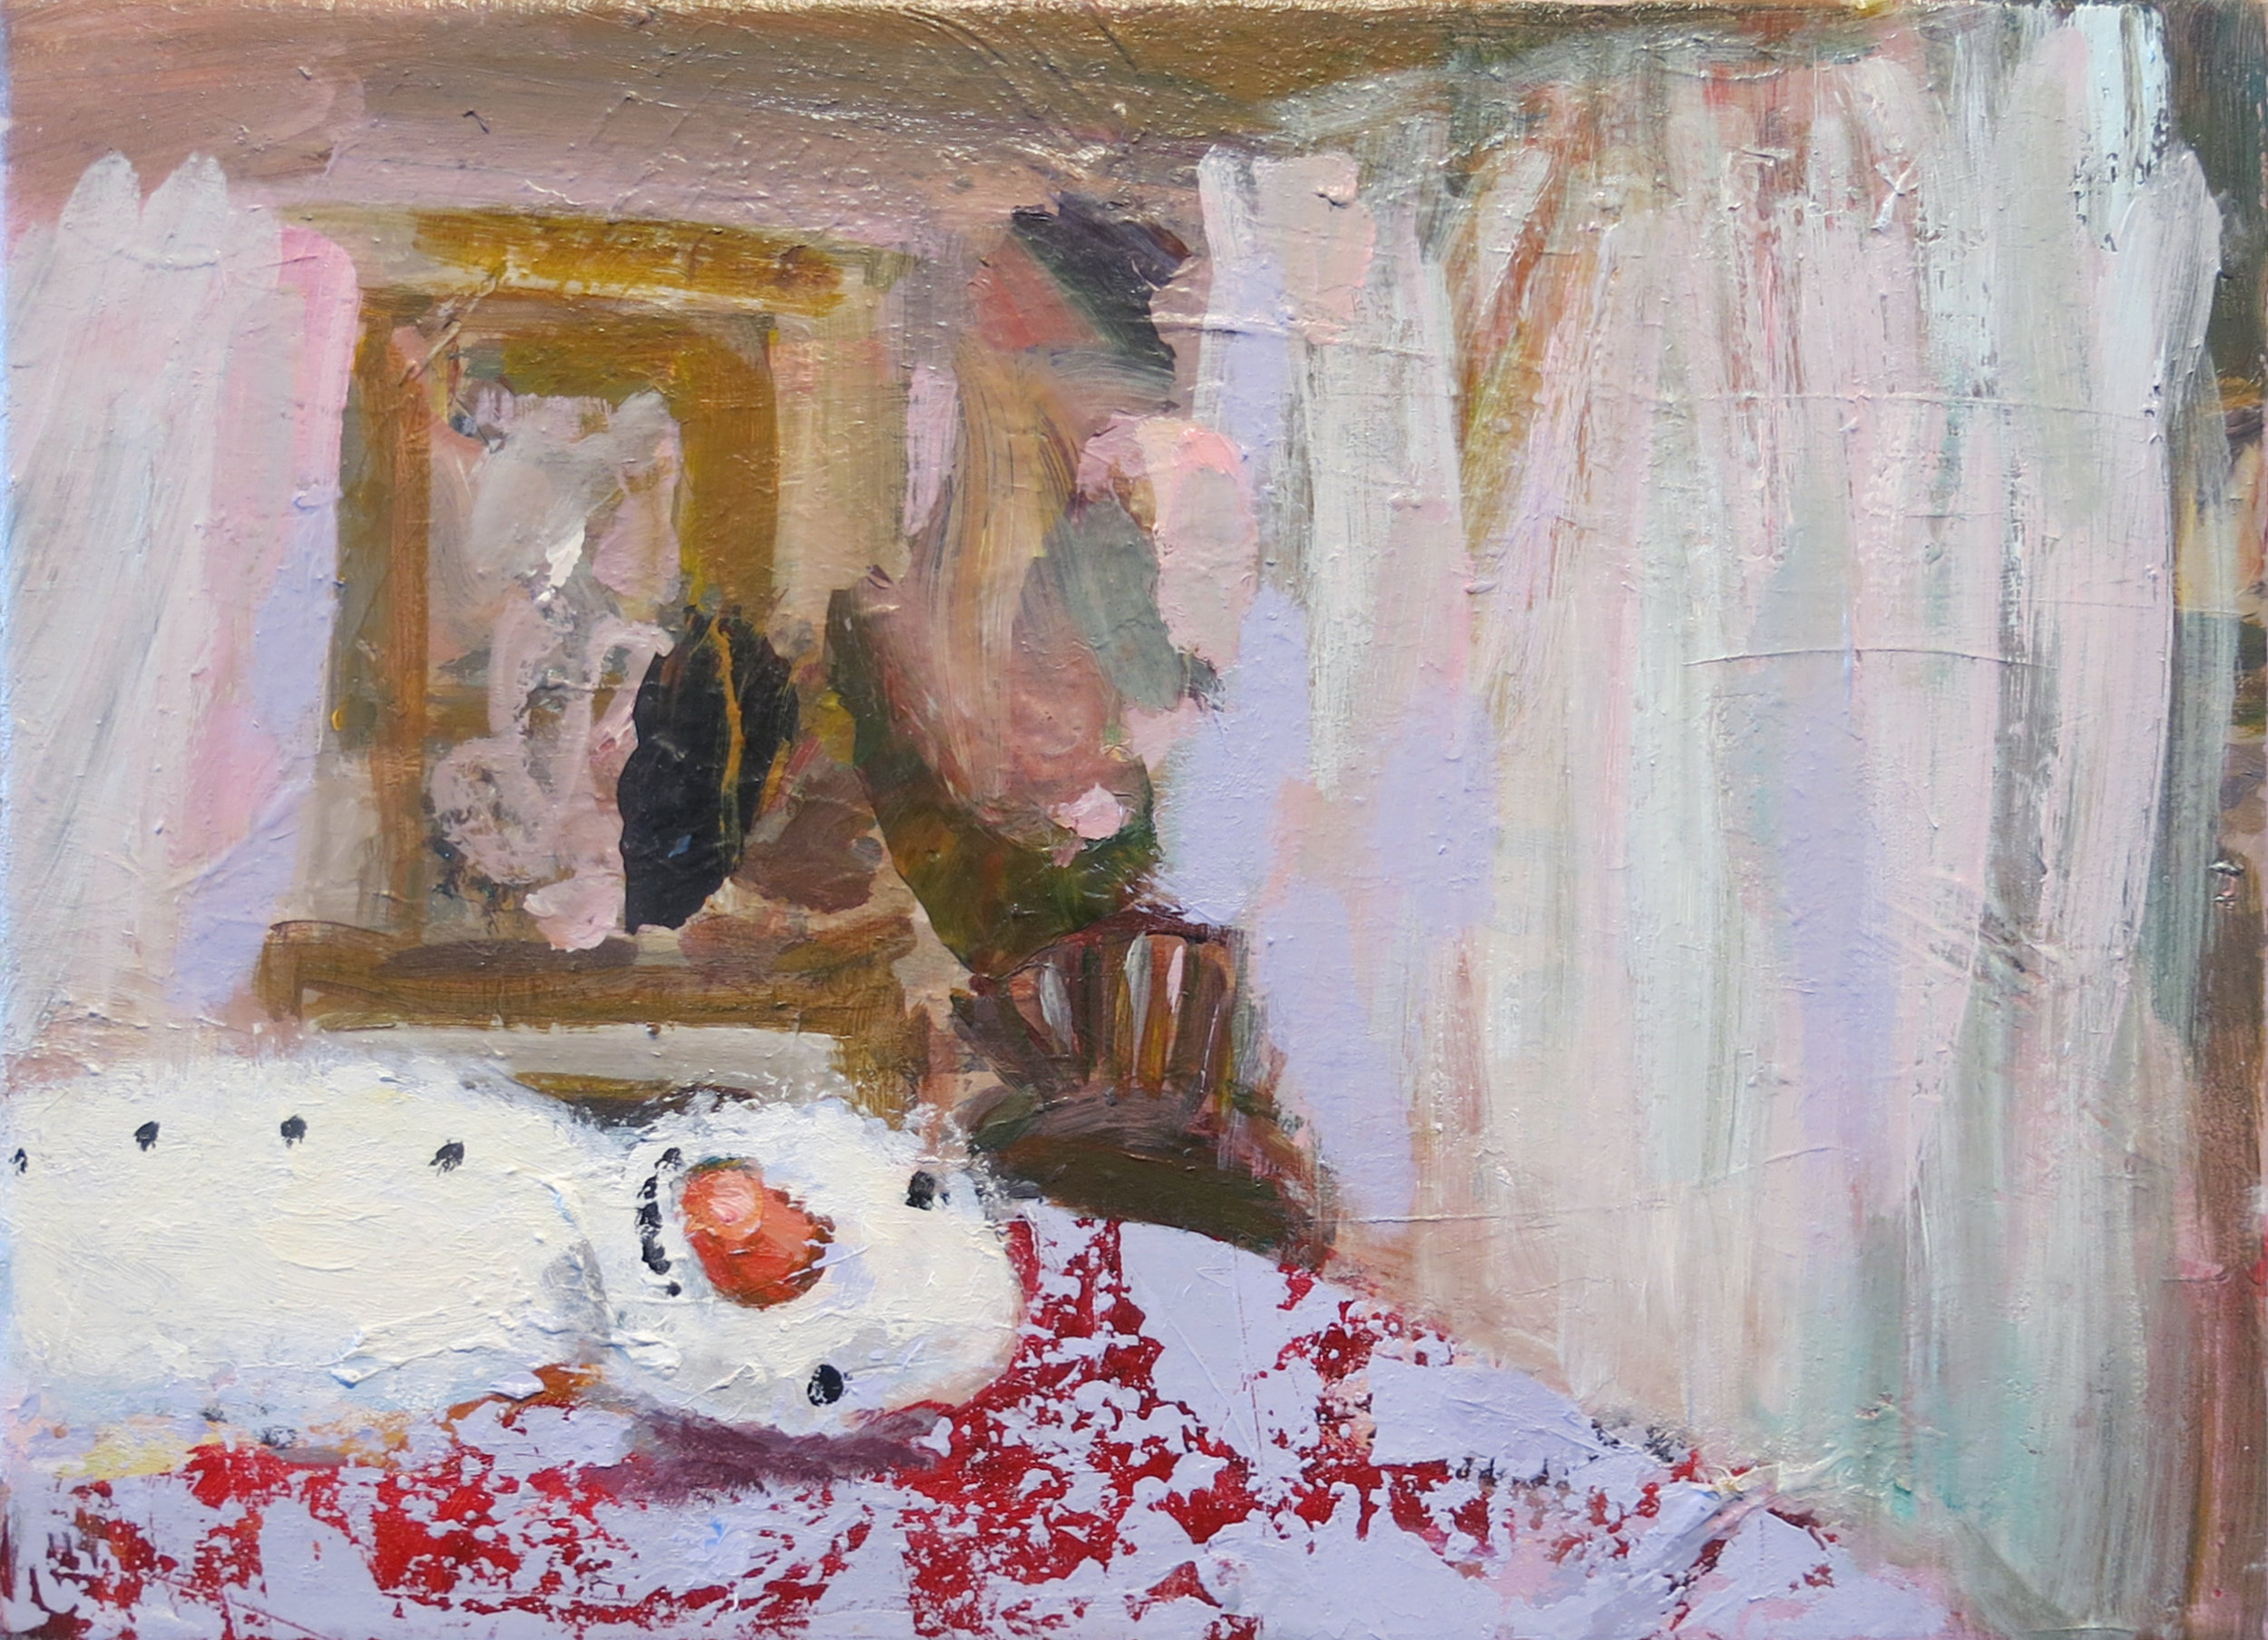 Judith Simonian, Nap Time for Frosty, 2014, acrylic on canvas, 11h x 14.75w in.